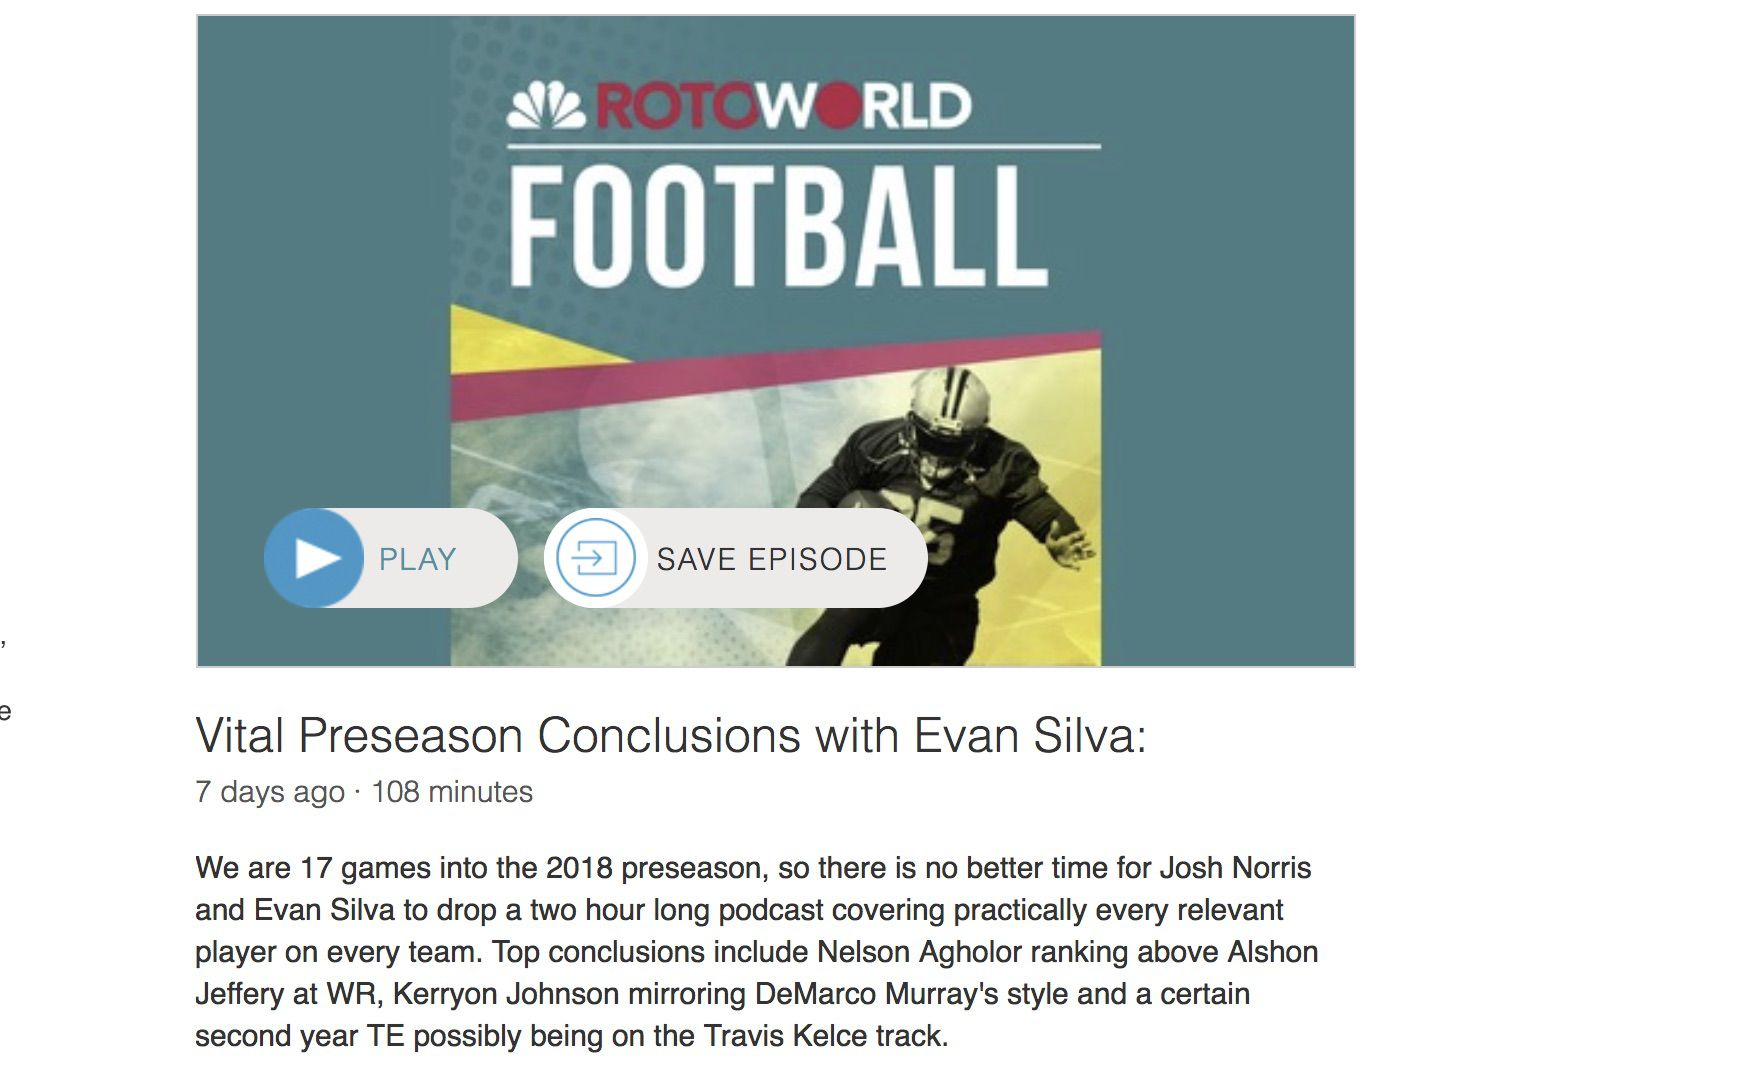 Screenshot of Rotoworld's fantasy football podcast page on Sticher.